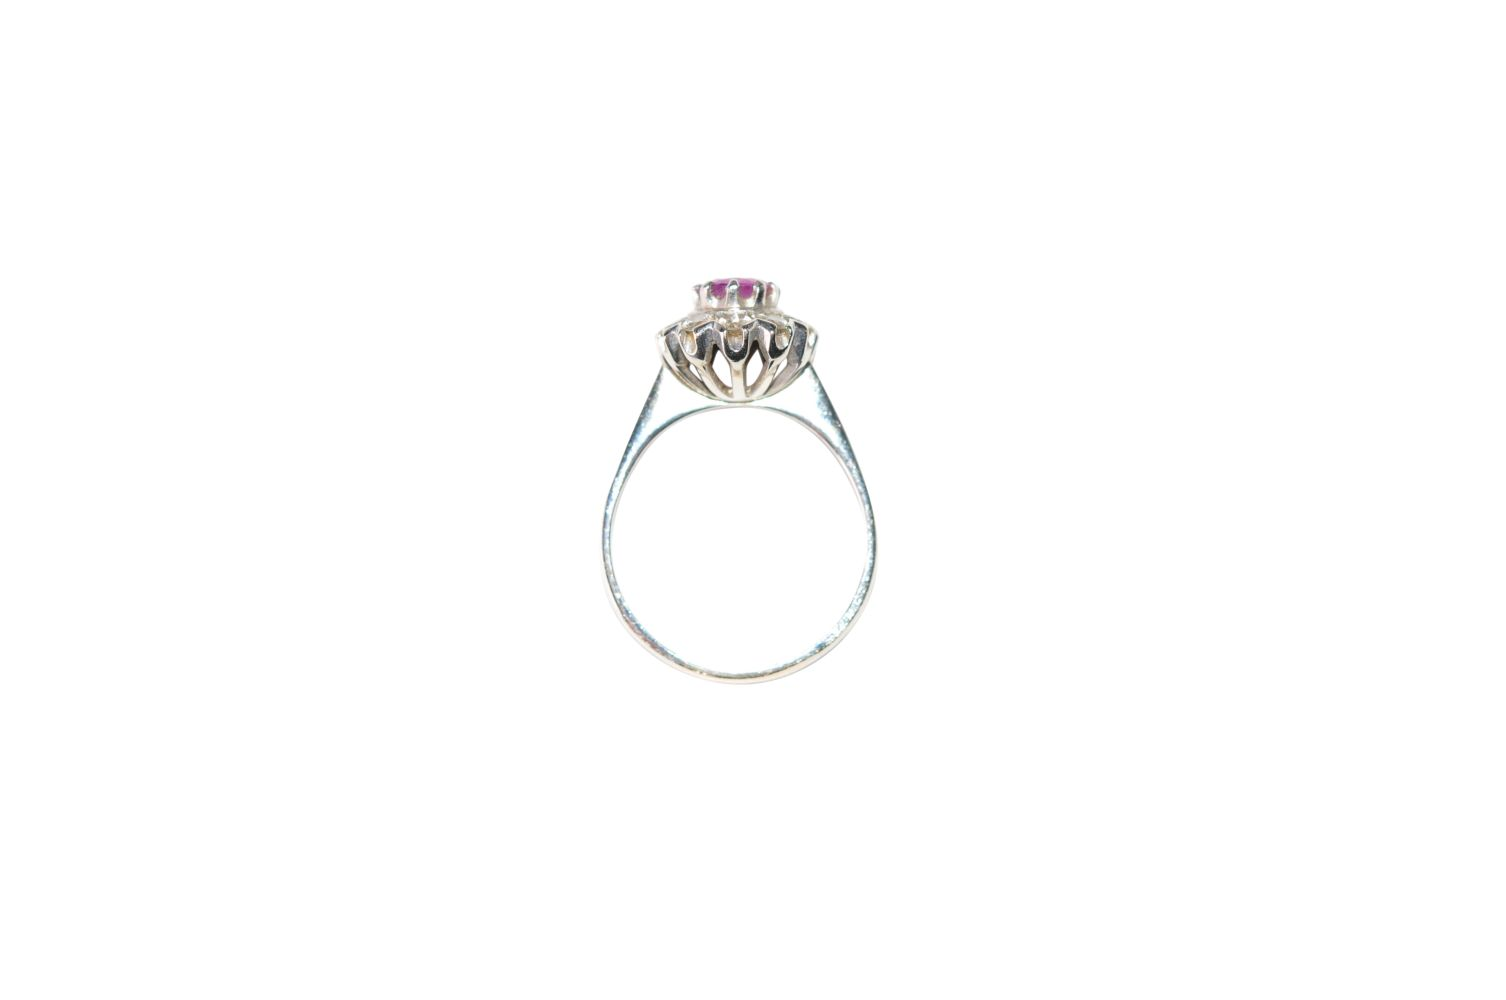 #138 Brilliant ring with ruby | Brillantring mit Rubin Image